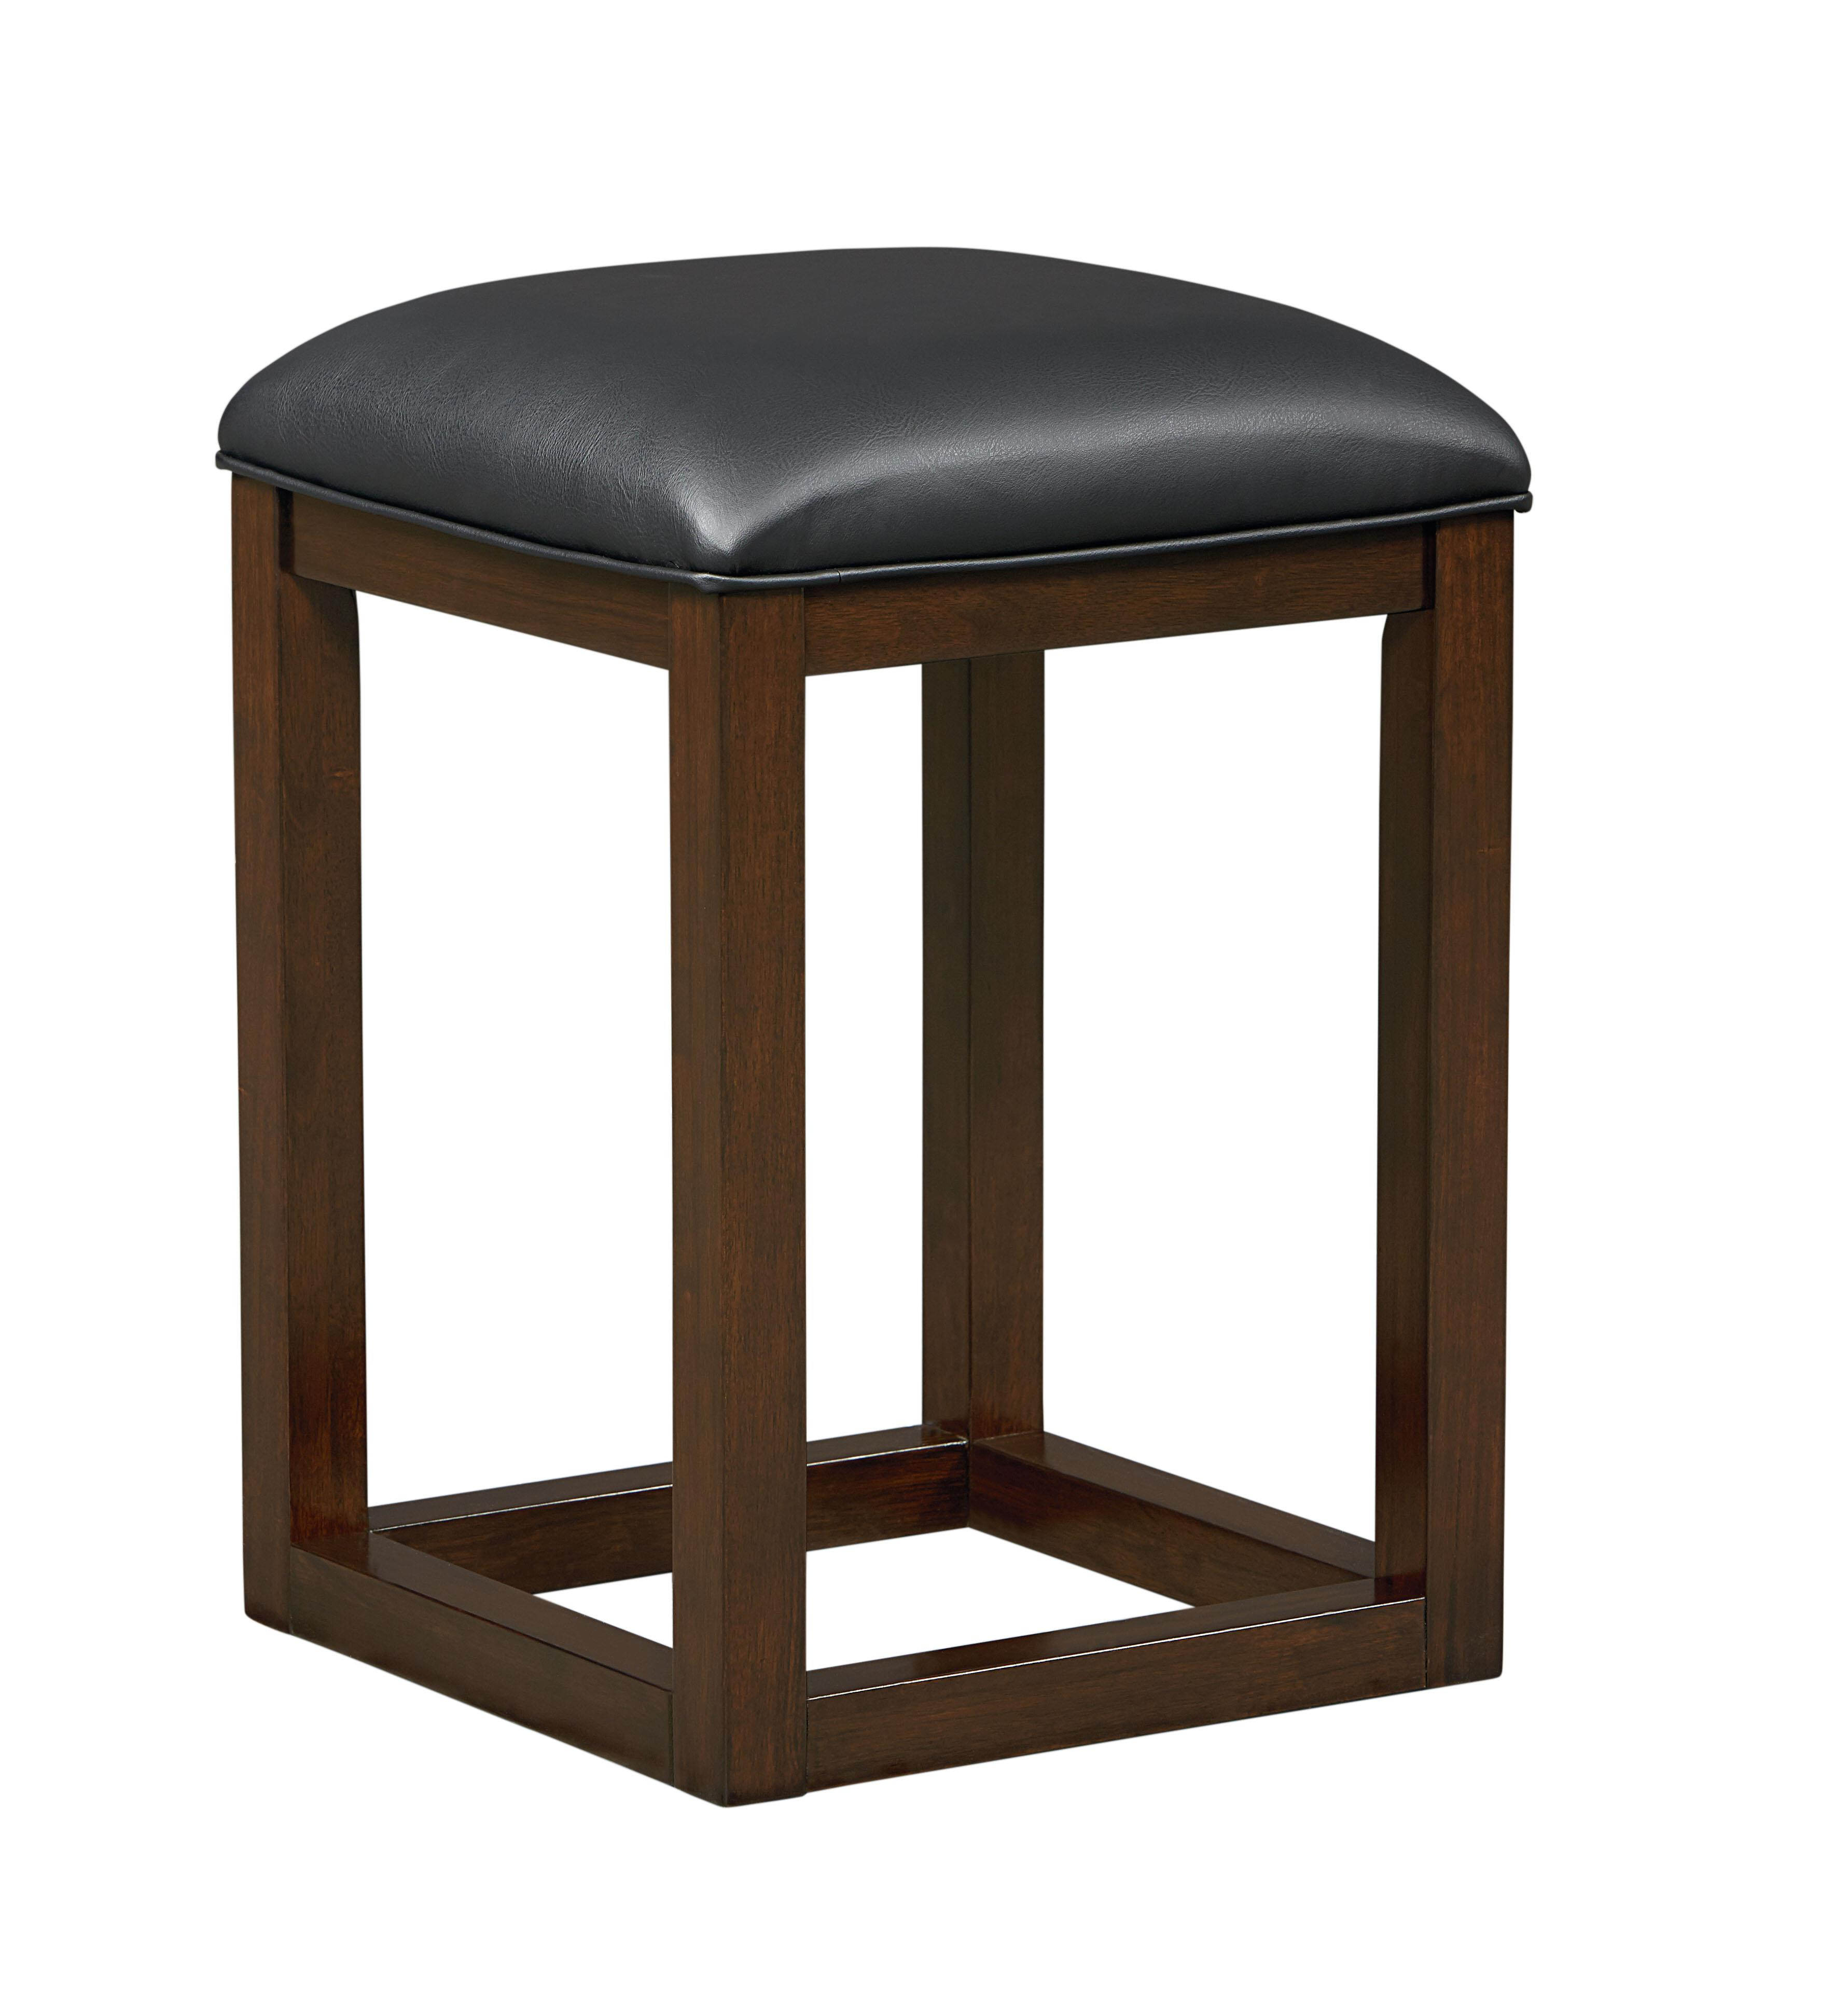 Standard furniture porter 15154 counter height upholstered bar stool dunk bright furniture - Standard counter height stool ...